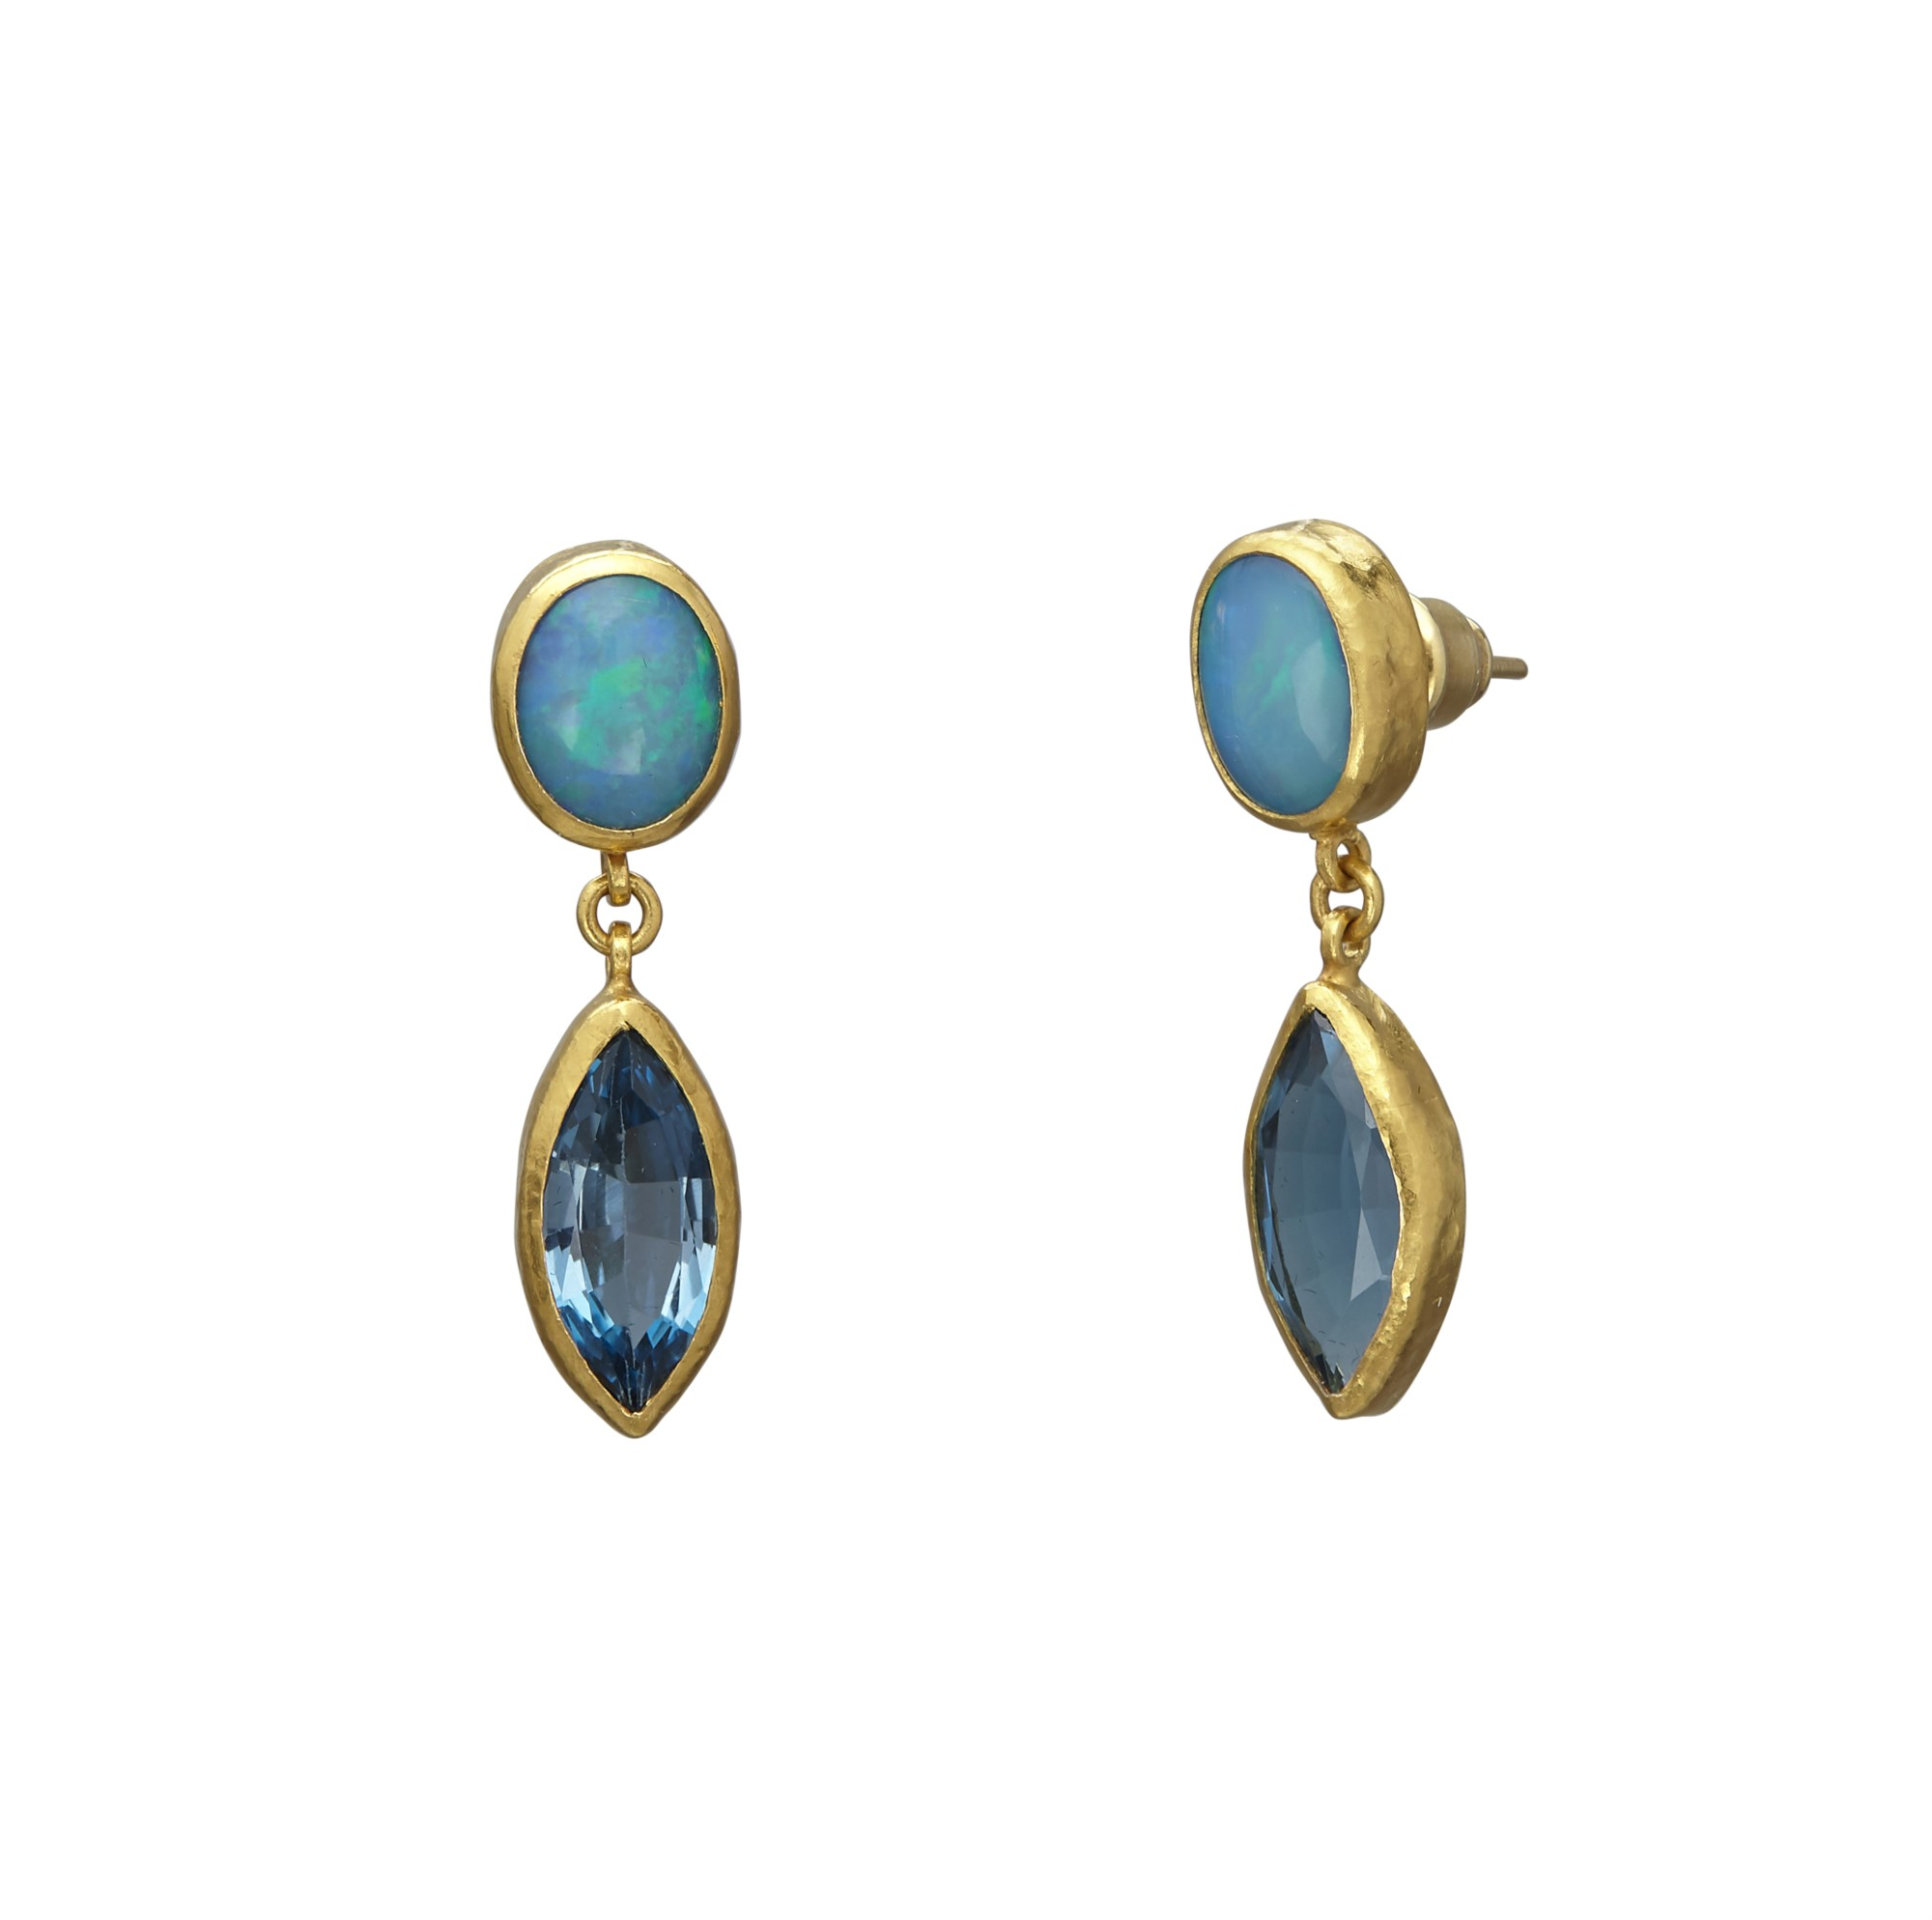 Gurhan 24K Yellow Gold  Blue Topaz Gold Earrings with Stones E-U21917-MS